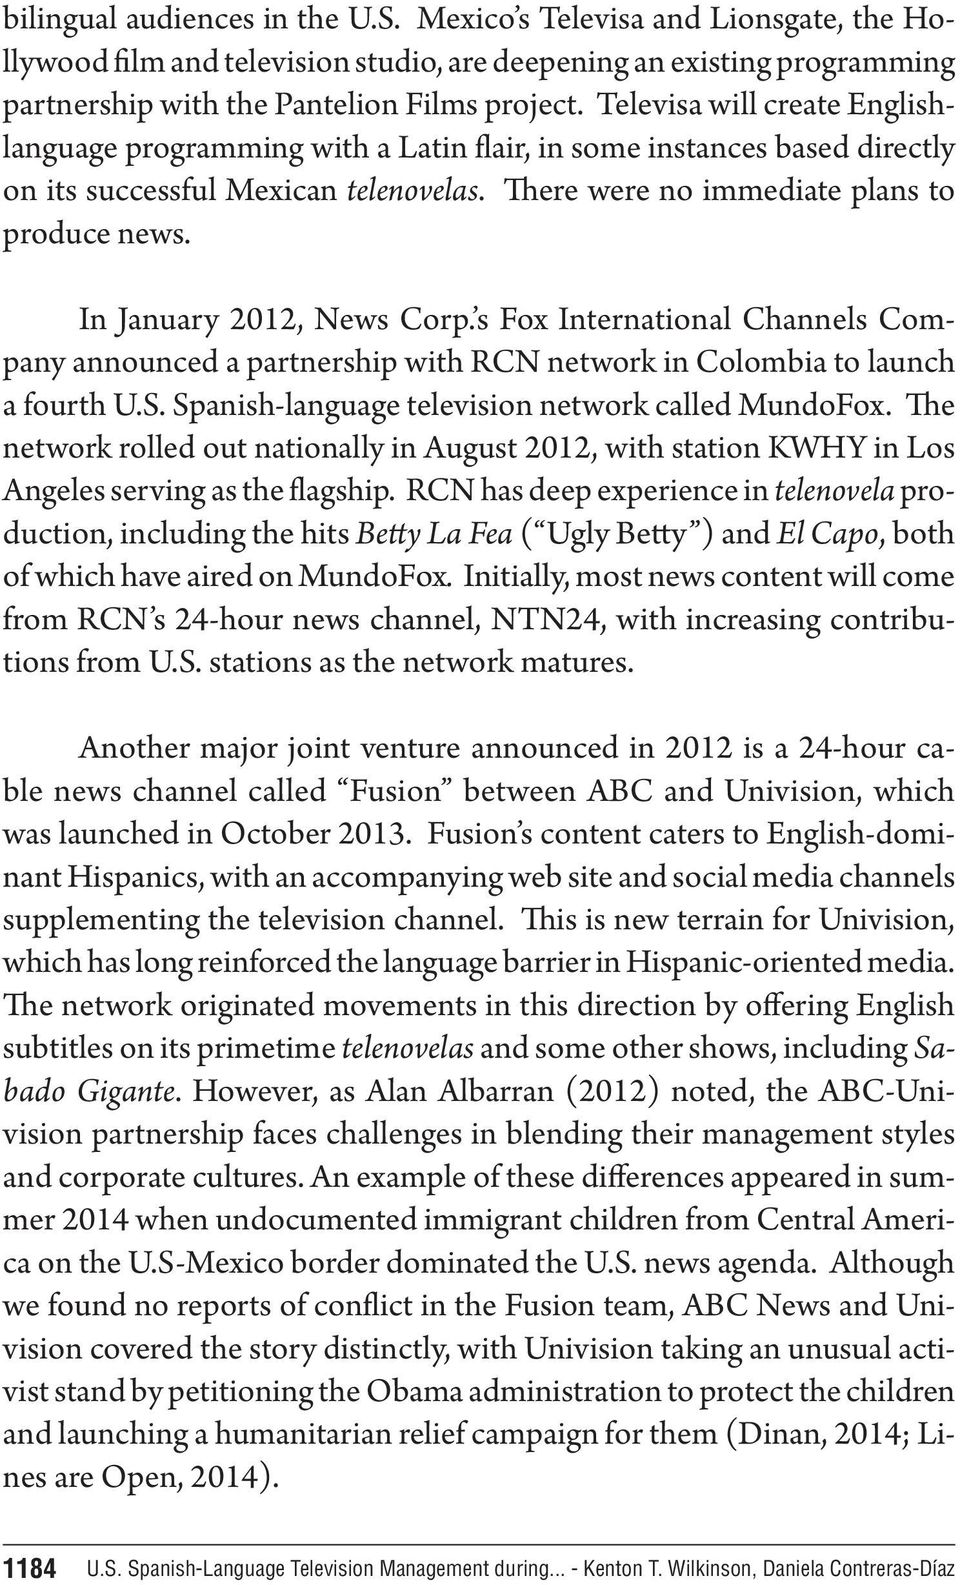 In January 2012, News Corp. s Fox International Channels Company announced a partnership with RCN network in Colombia to launch a fourth U.S. Spanish-language television network called MundoFox.